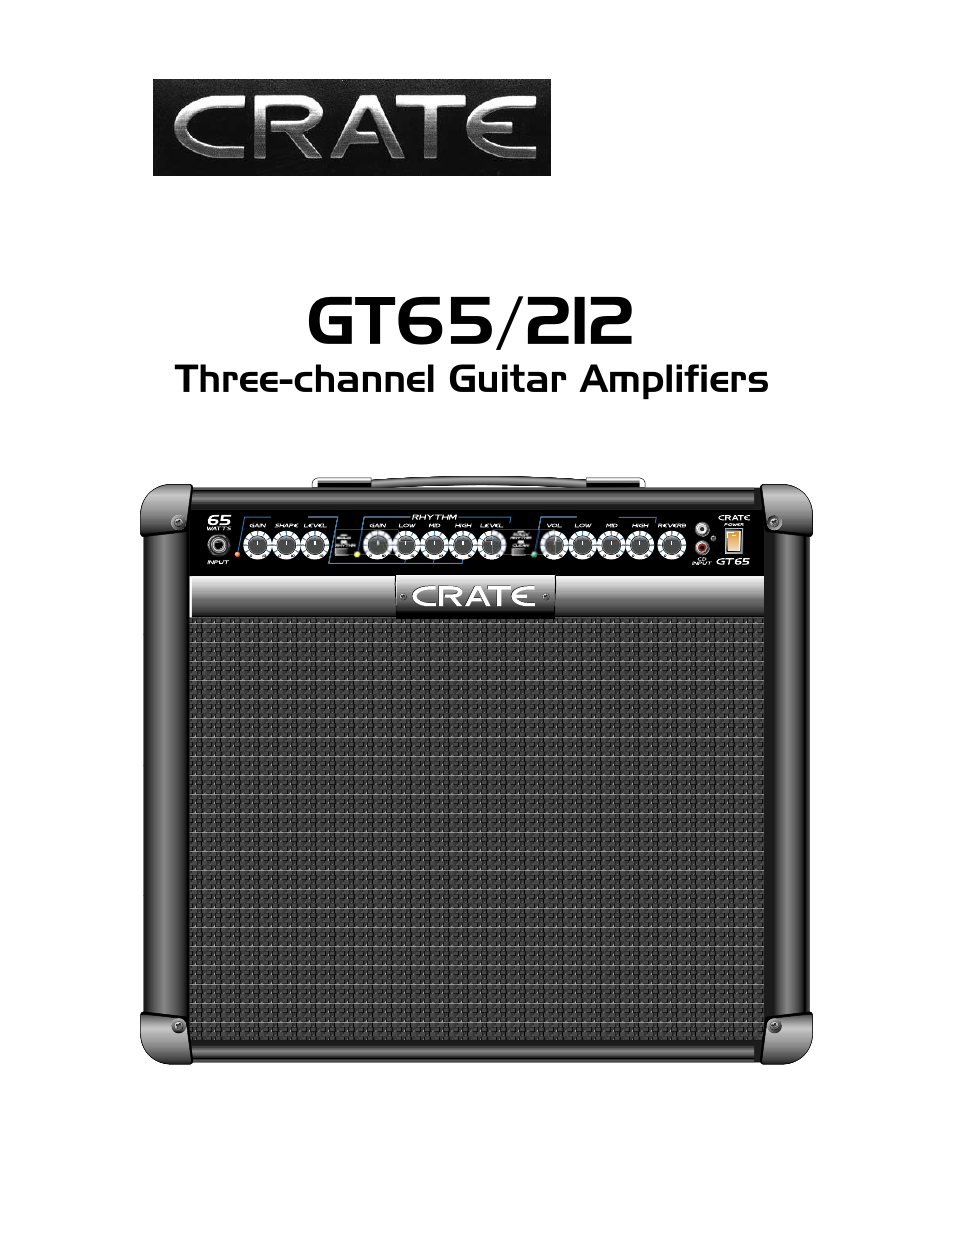 crate amplifiers gt65 212 user manual 8 pages rh manualsdir com crate gt 212 service manual